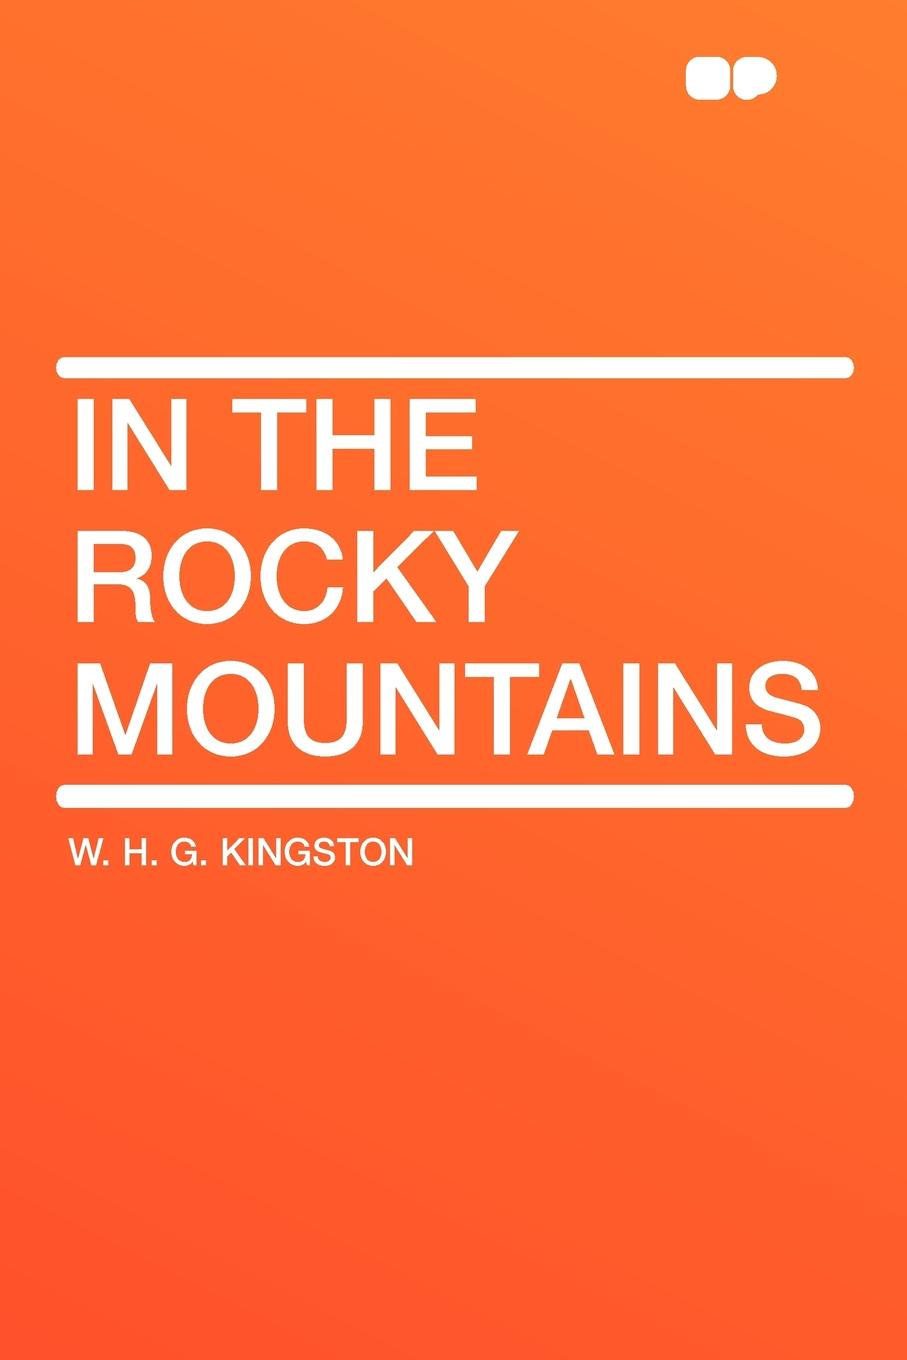 W. H. G. Kingston In the Rocky Mountains